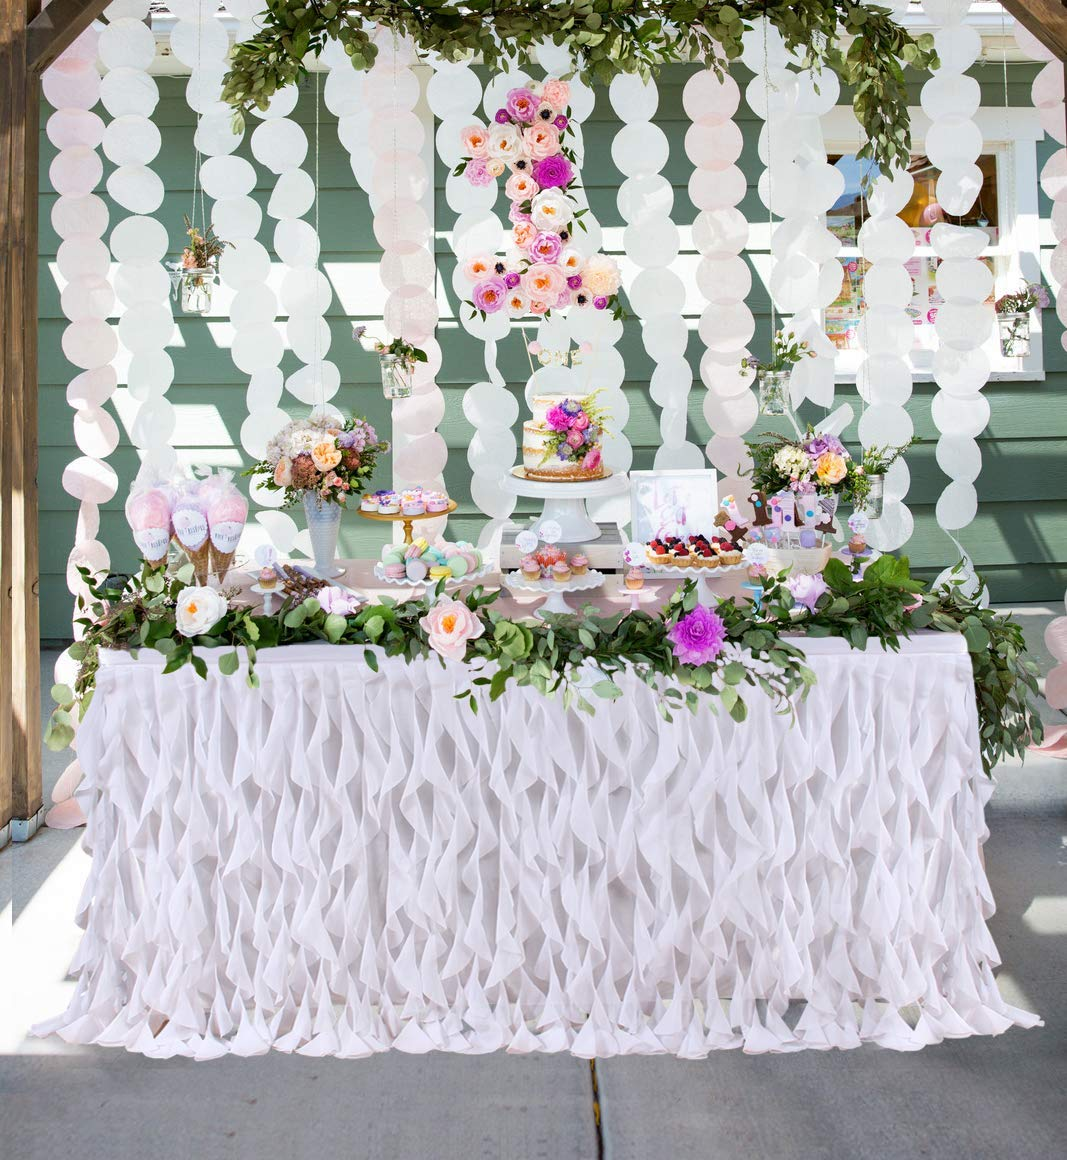 9ft Curly Willow Ruffle Table Skirt for Rectangle Round Table Wedding Baby Shower Birthday Party Decorations by HoneyDec